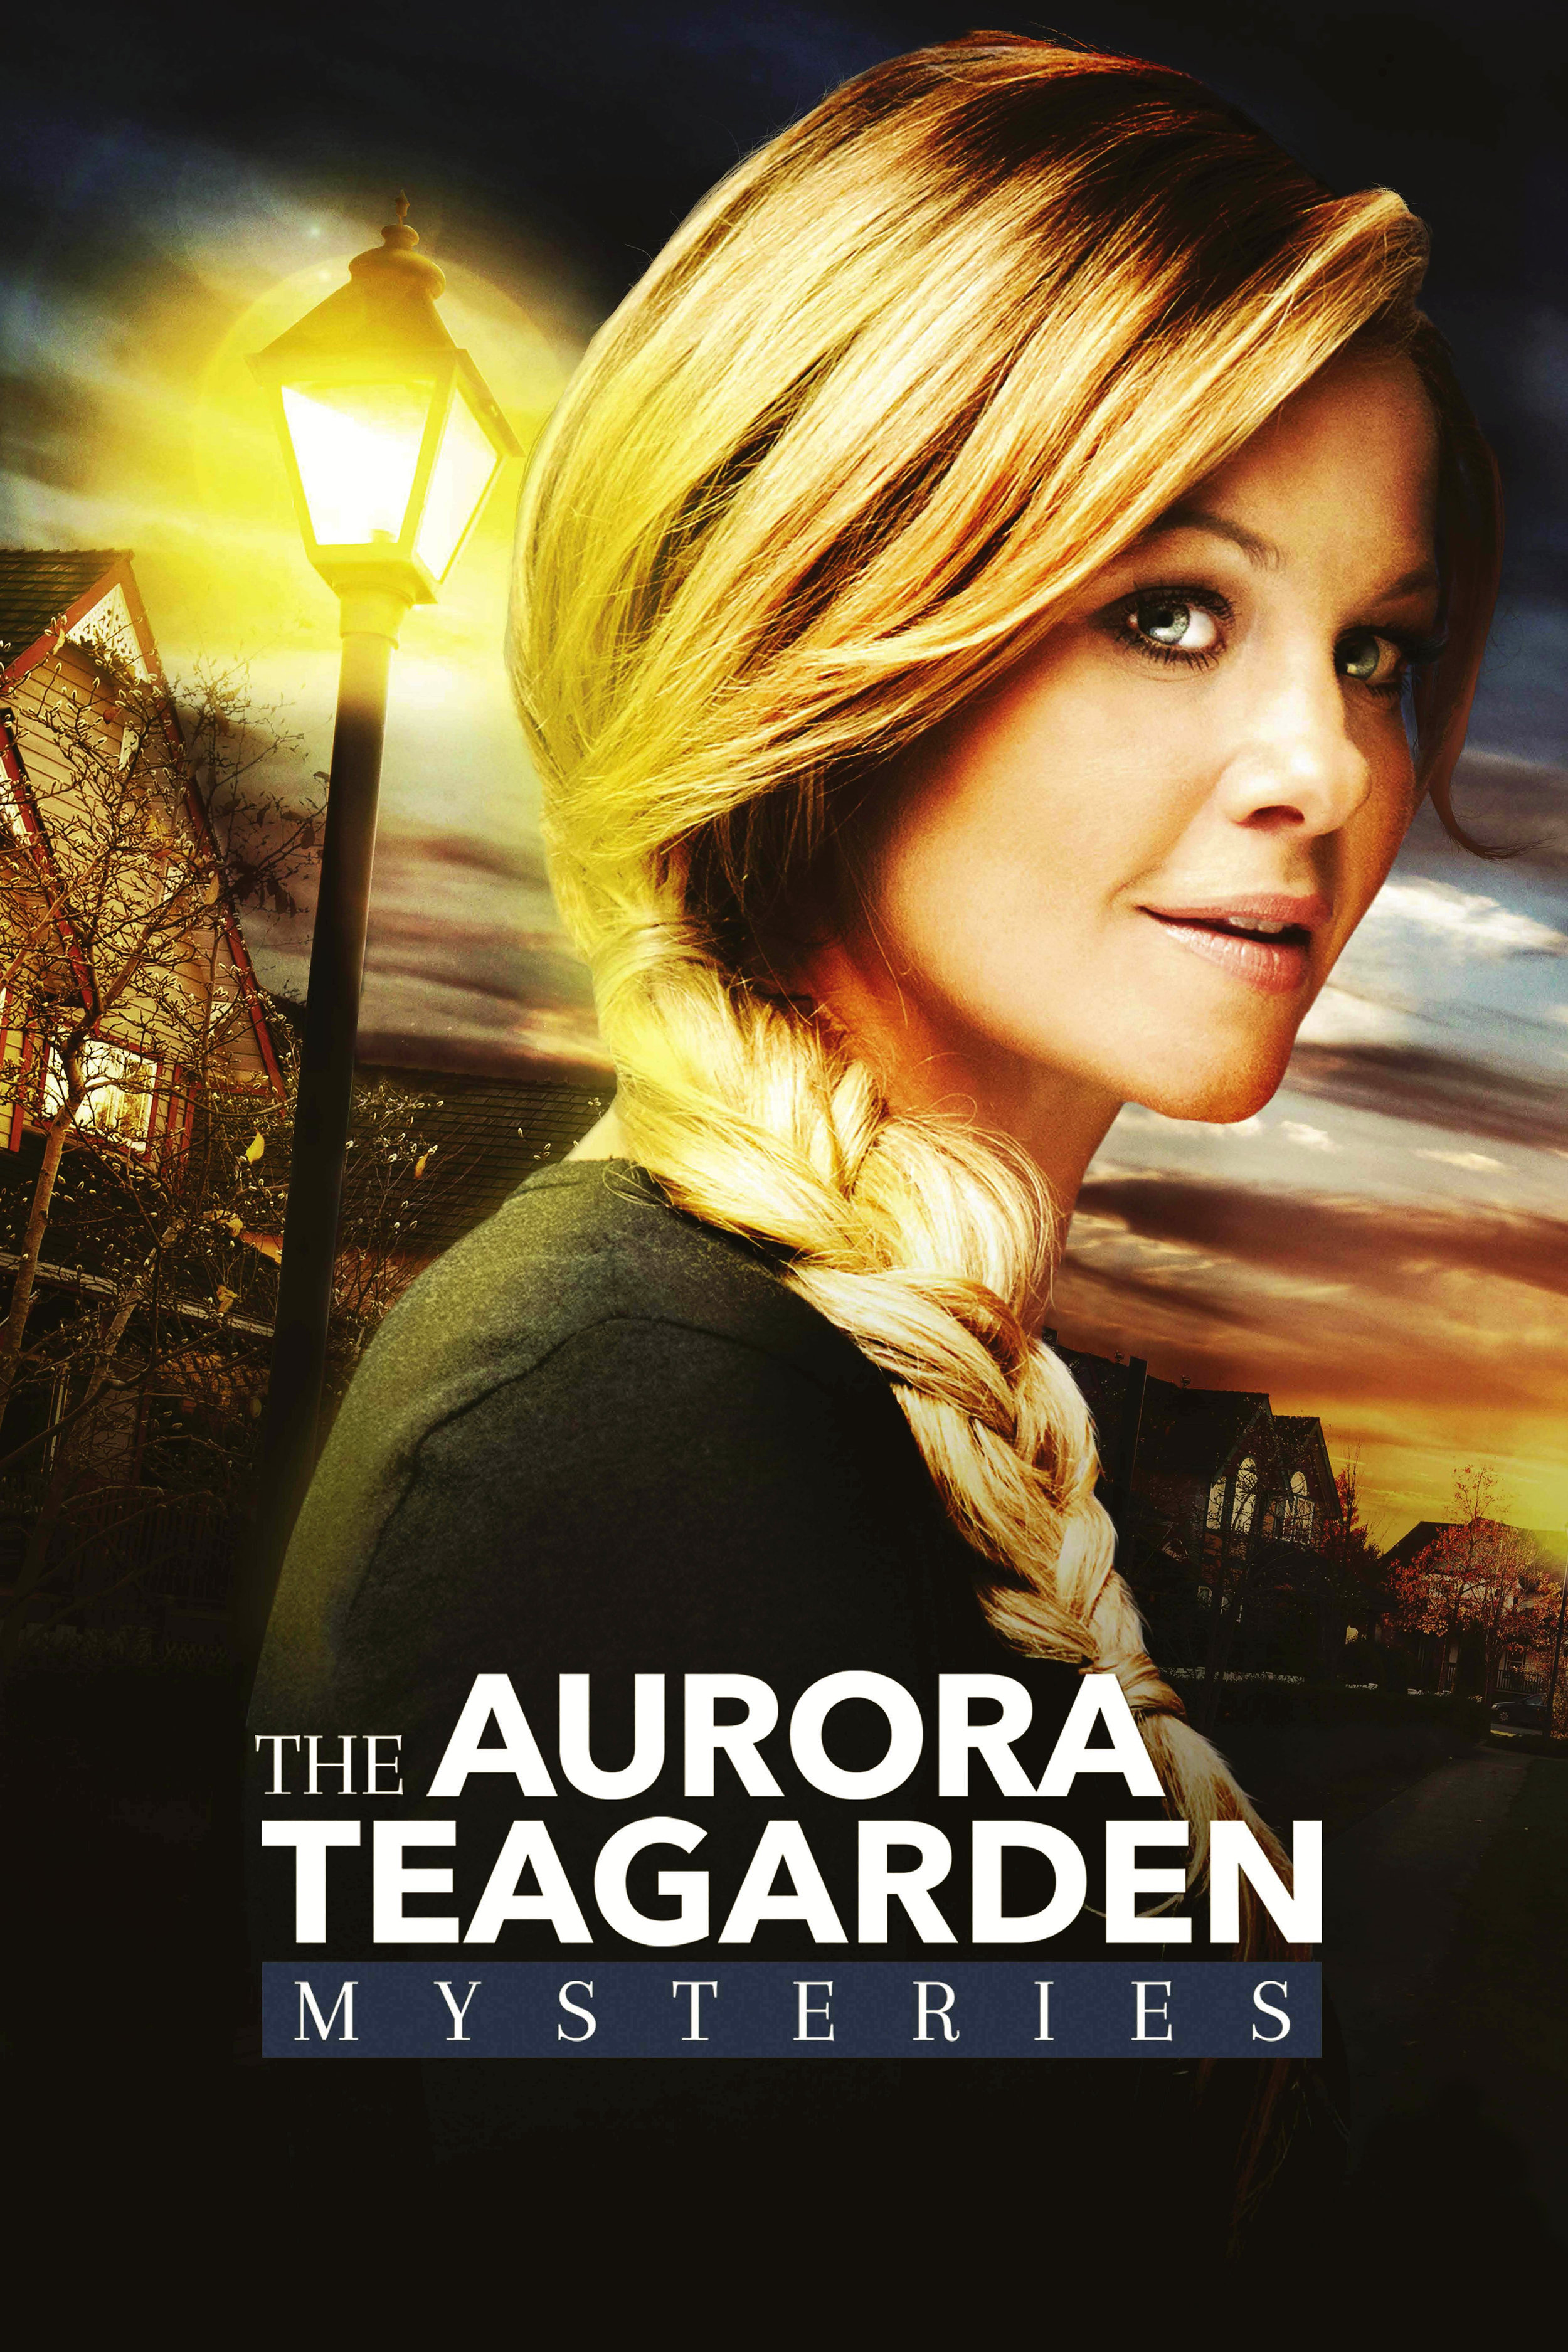 The Aurora Teagarden Mysteries